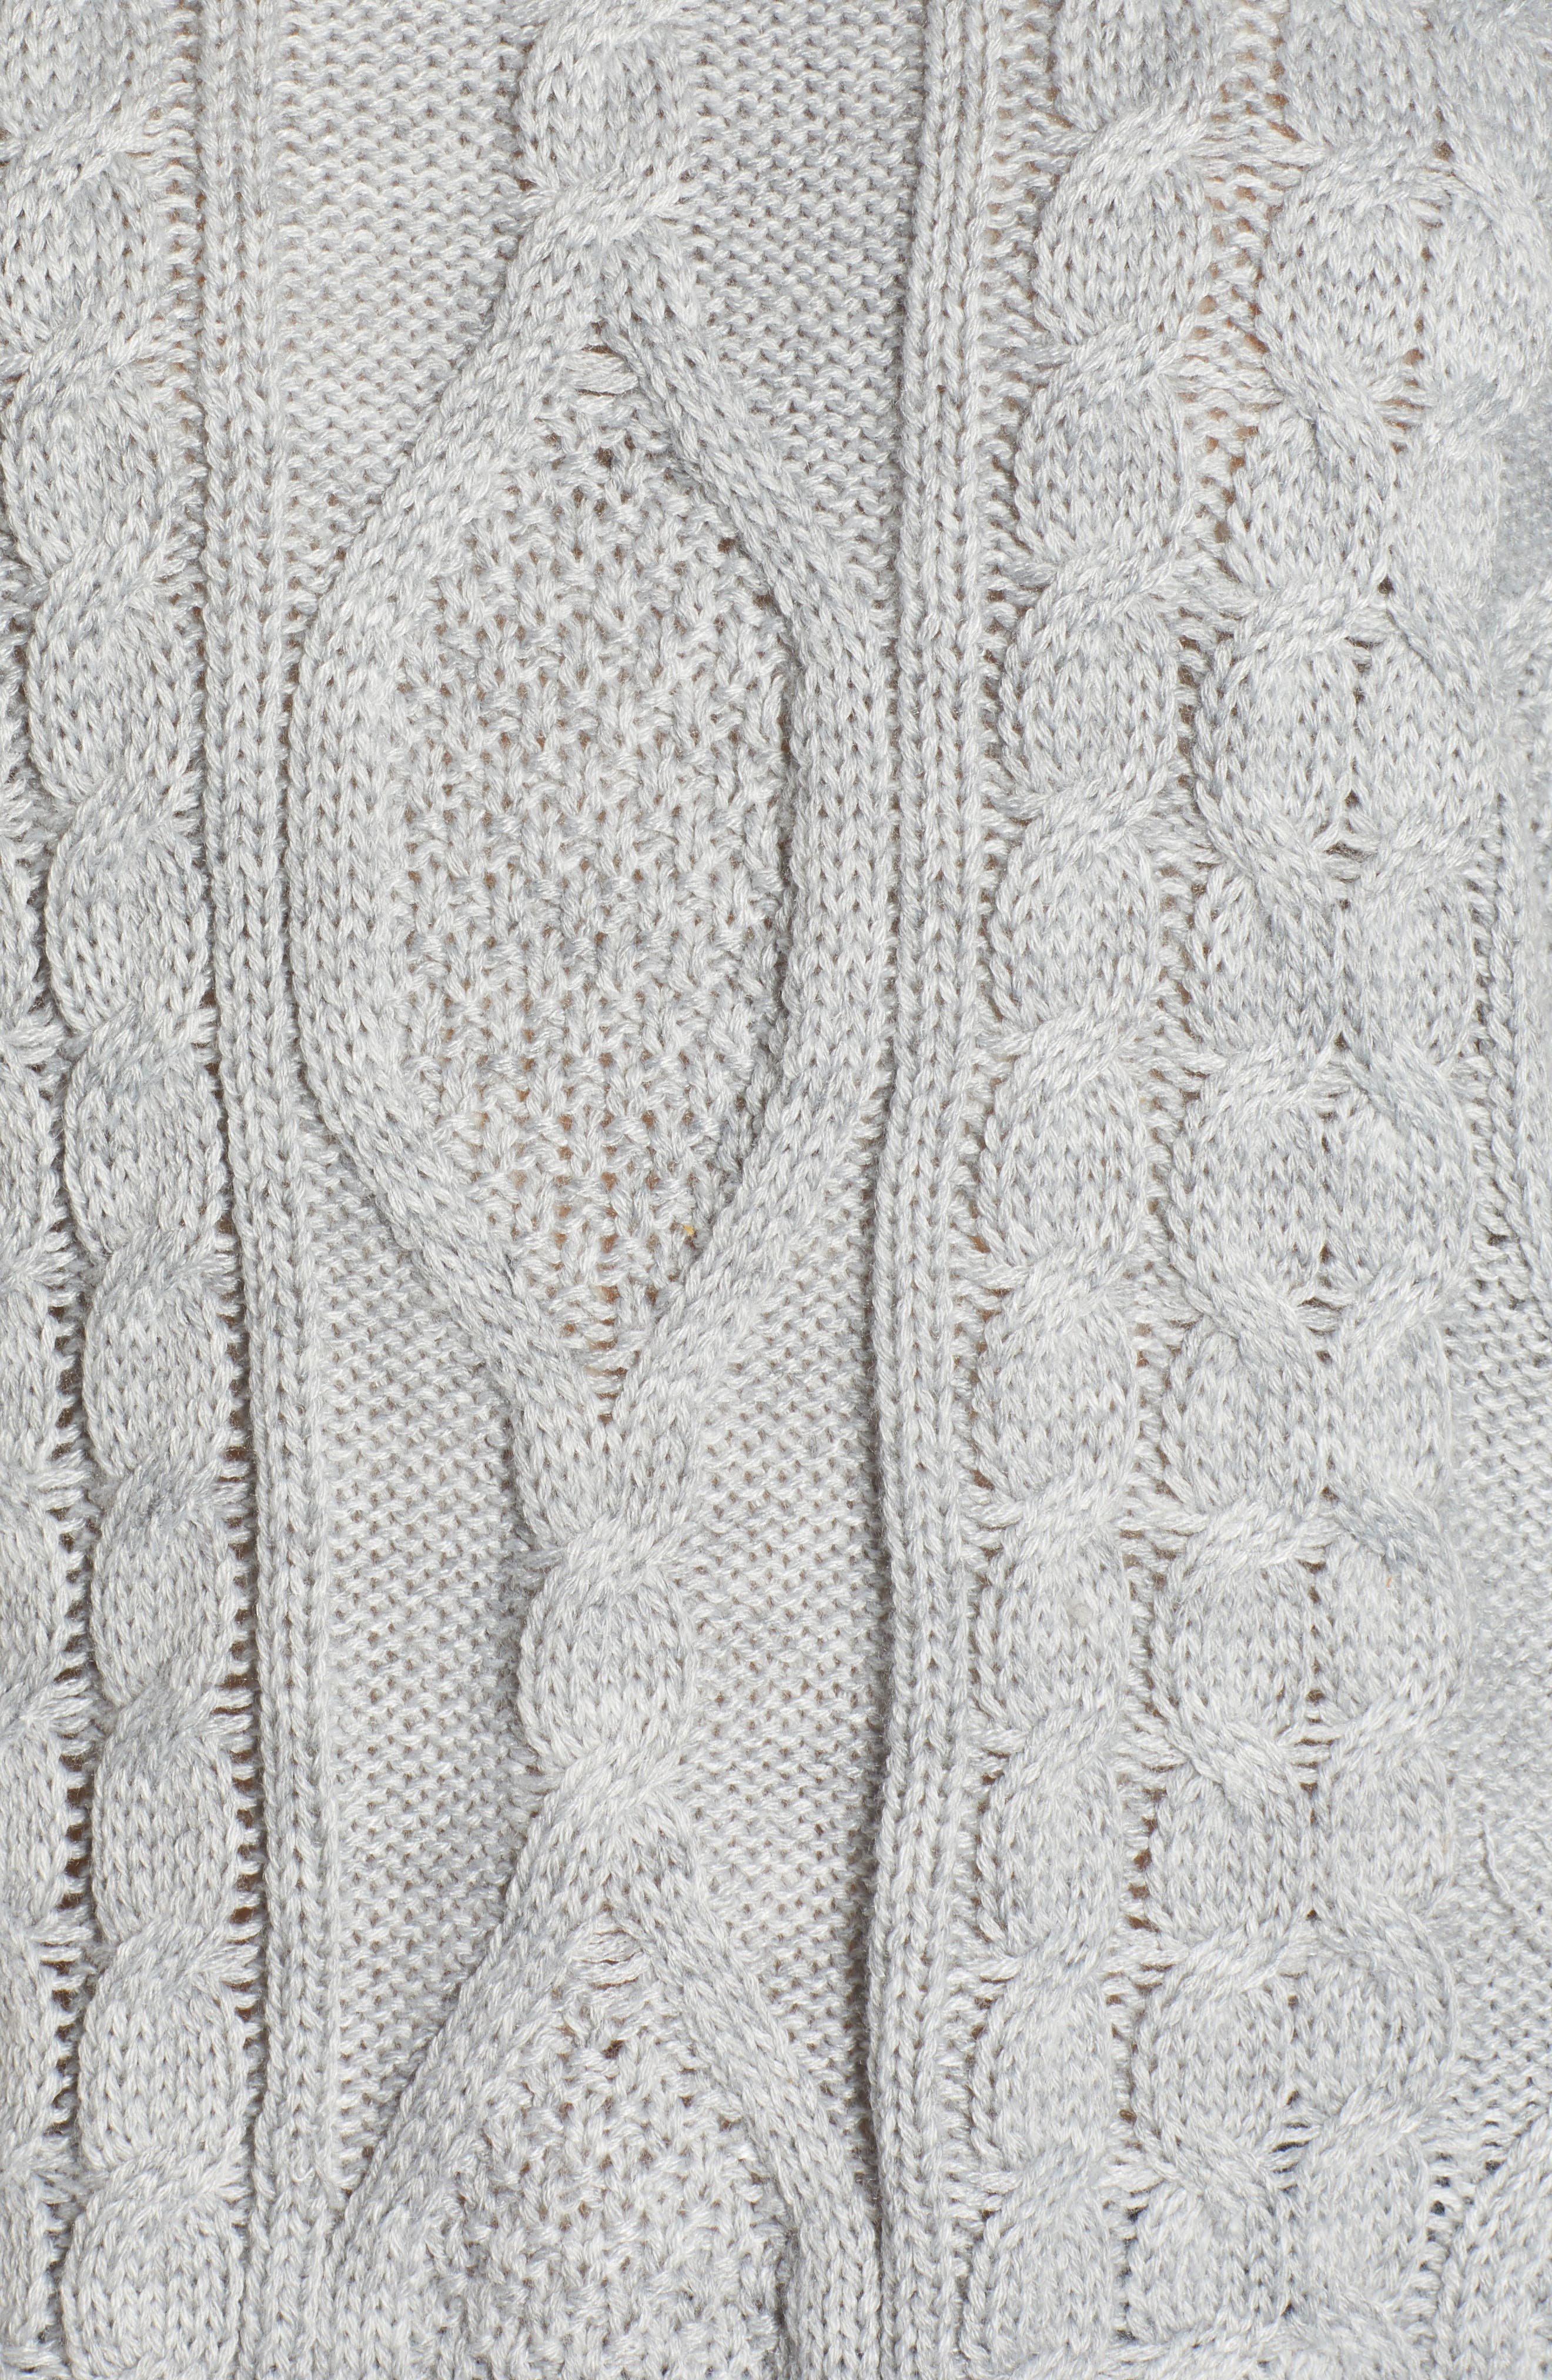 Dusk Till Dawn Cable Sweater,                             Alternate thumbnail 5, color,                             GREY